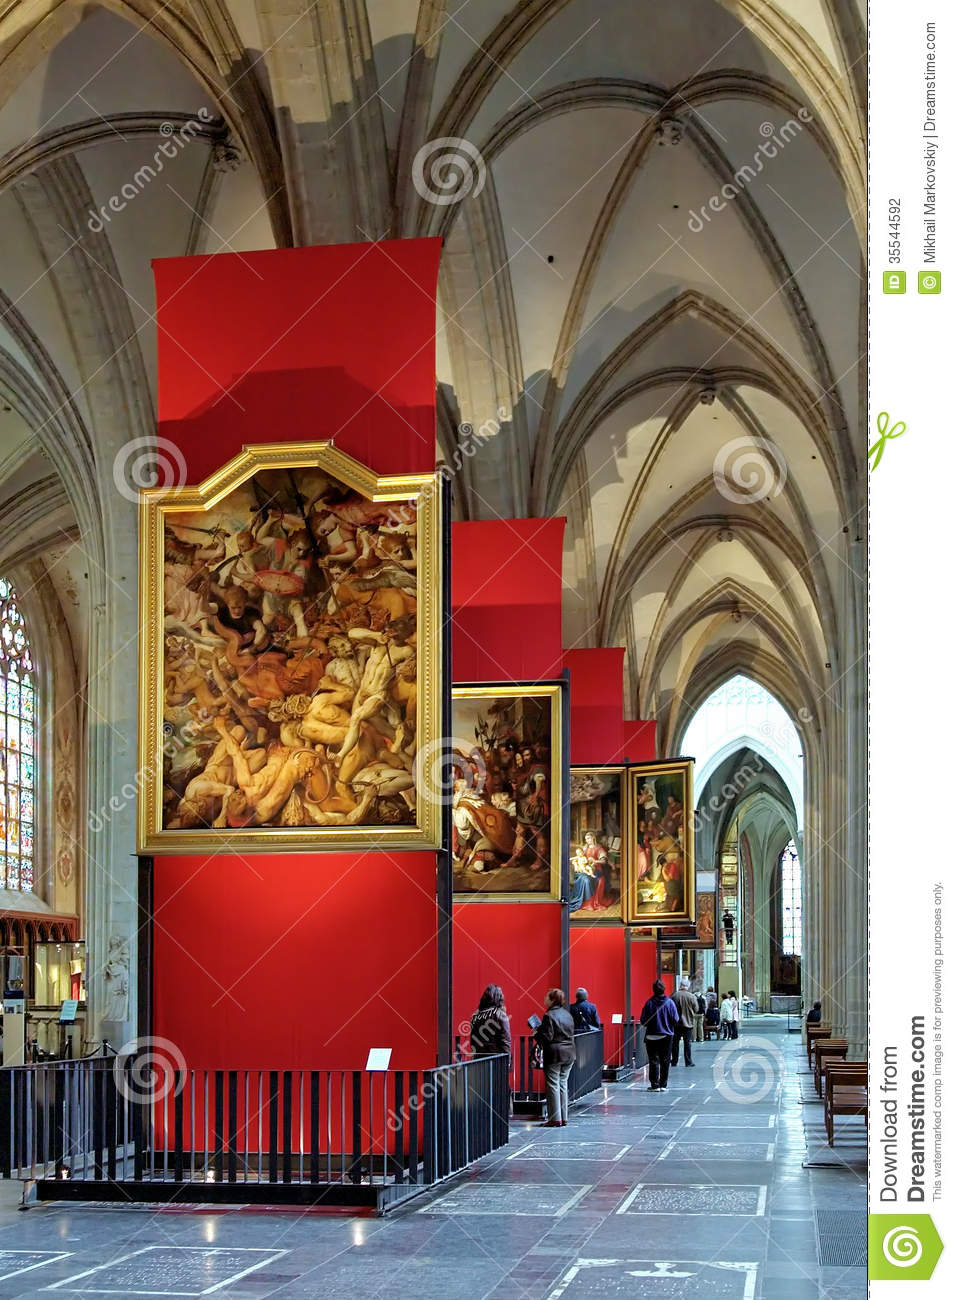 paintings of peter paul rubens in antwerp cathedral editorial photography